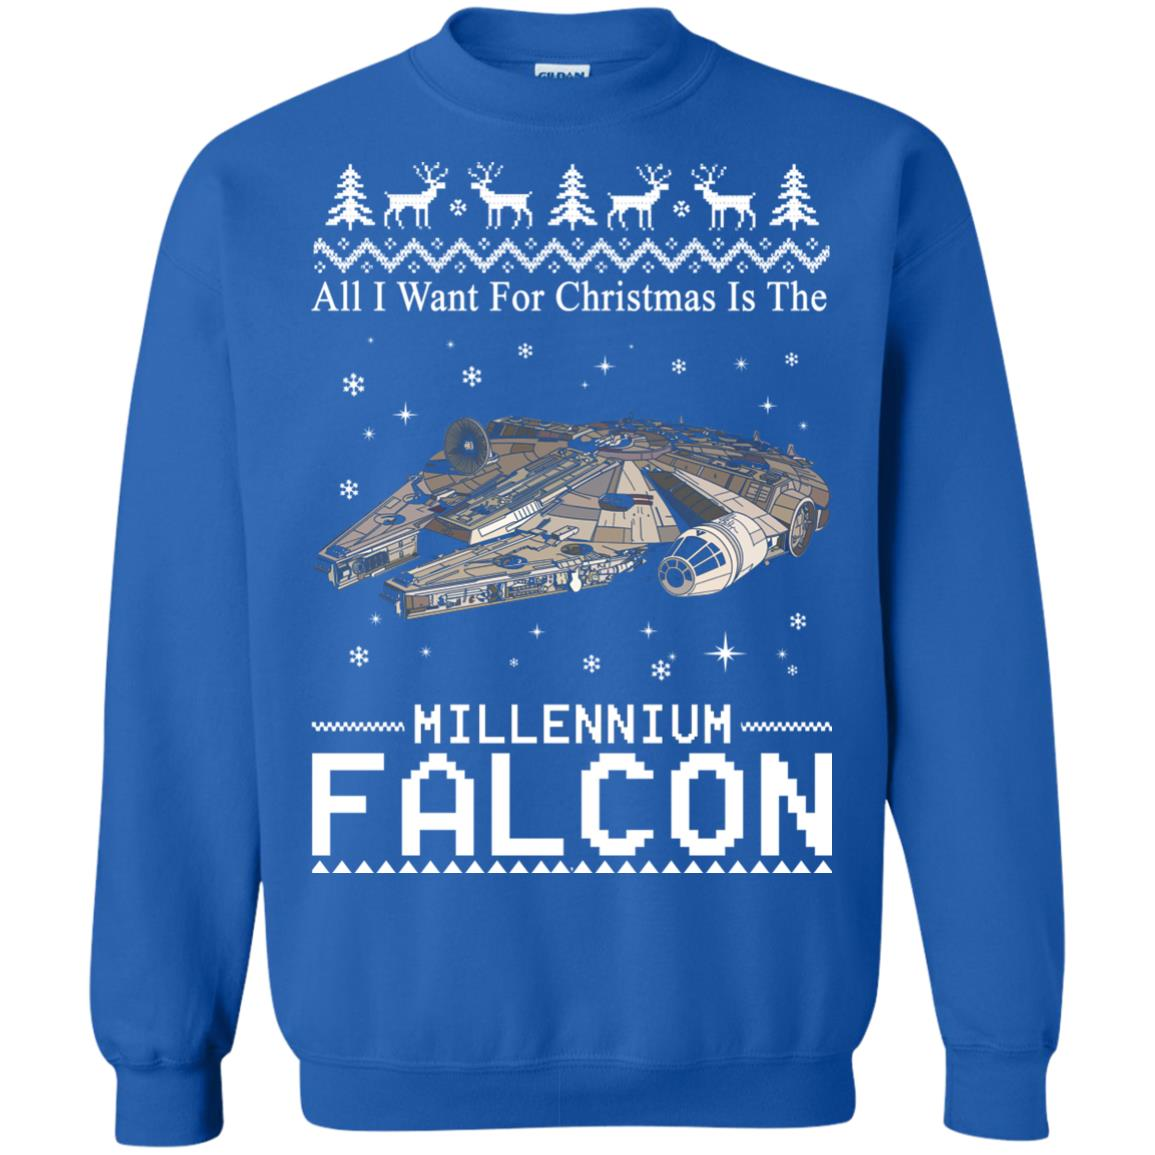 image 2142 - All I Want For Christmas is The Millennium Falcon Sweater, Ugly Sweatshirt